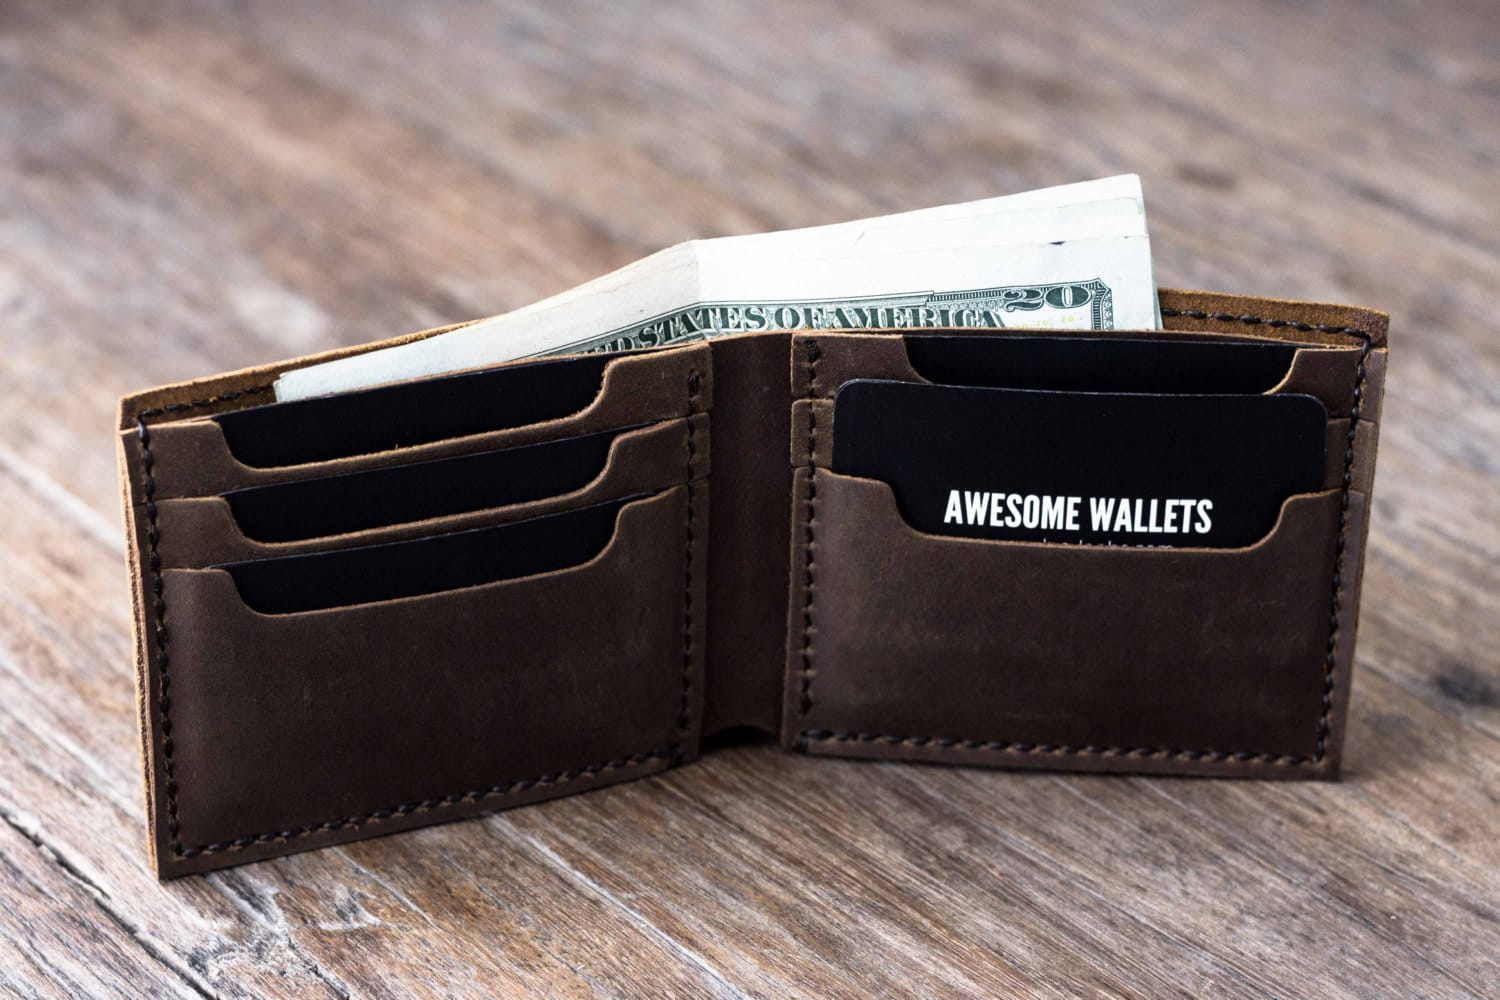 Big Texas Wallet Handmade Manly Mans Leather Bifold